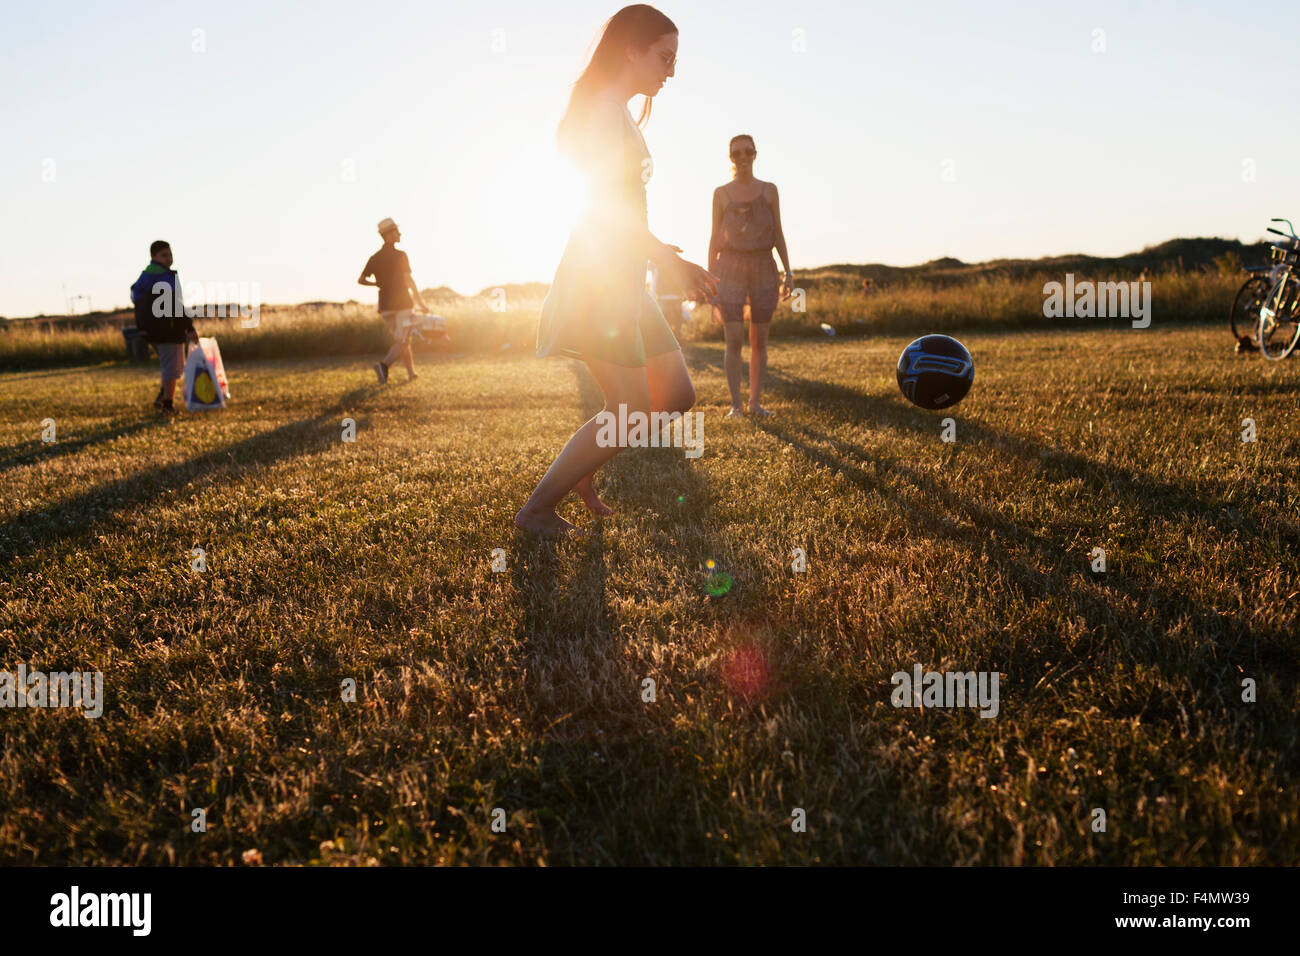 Friends playing football on field during sunset Stock Photo